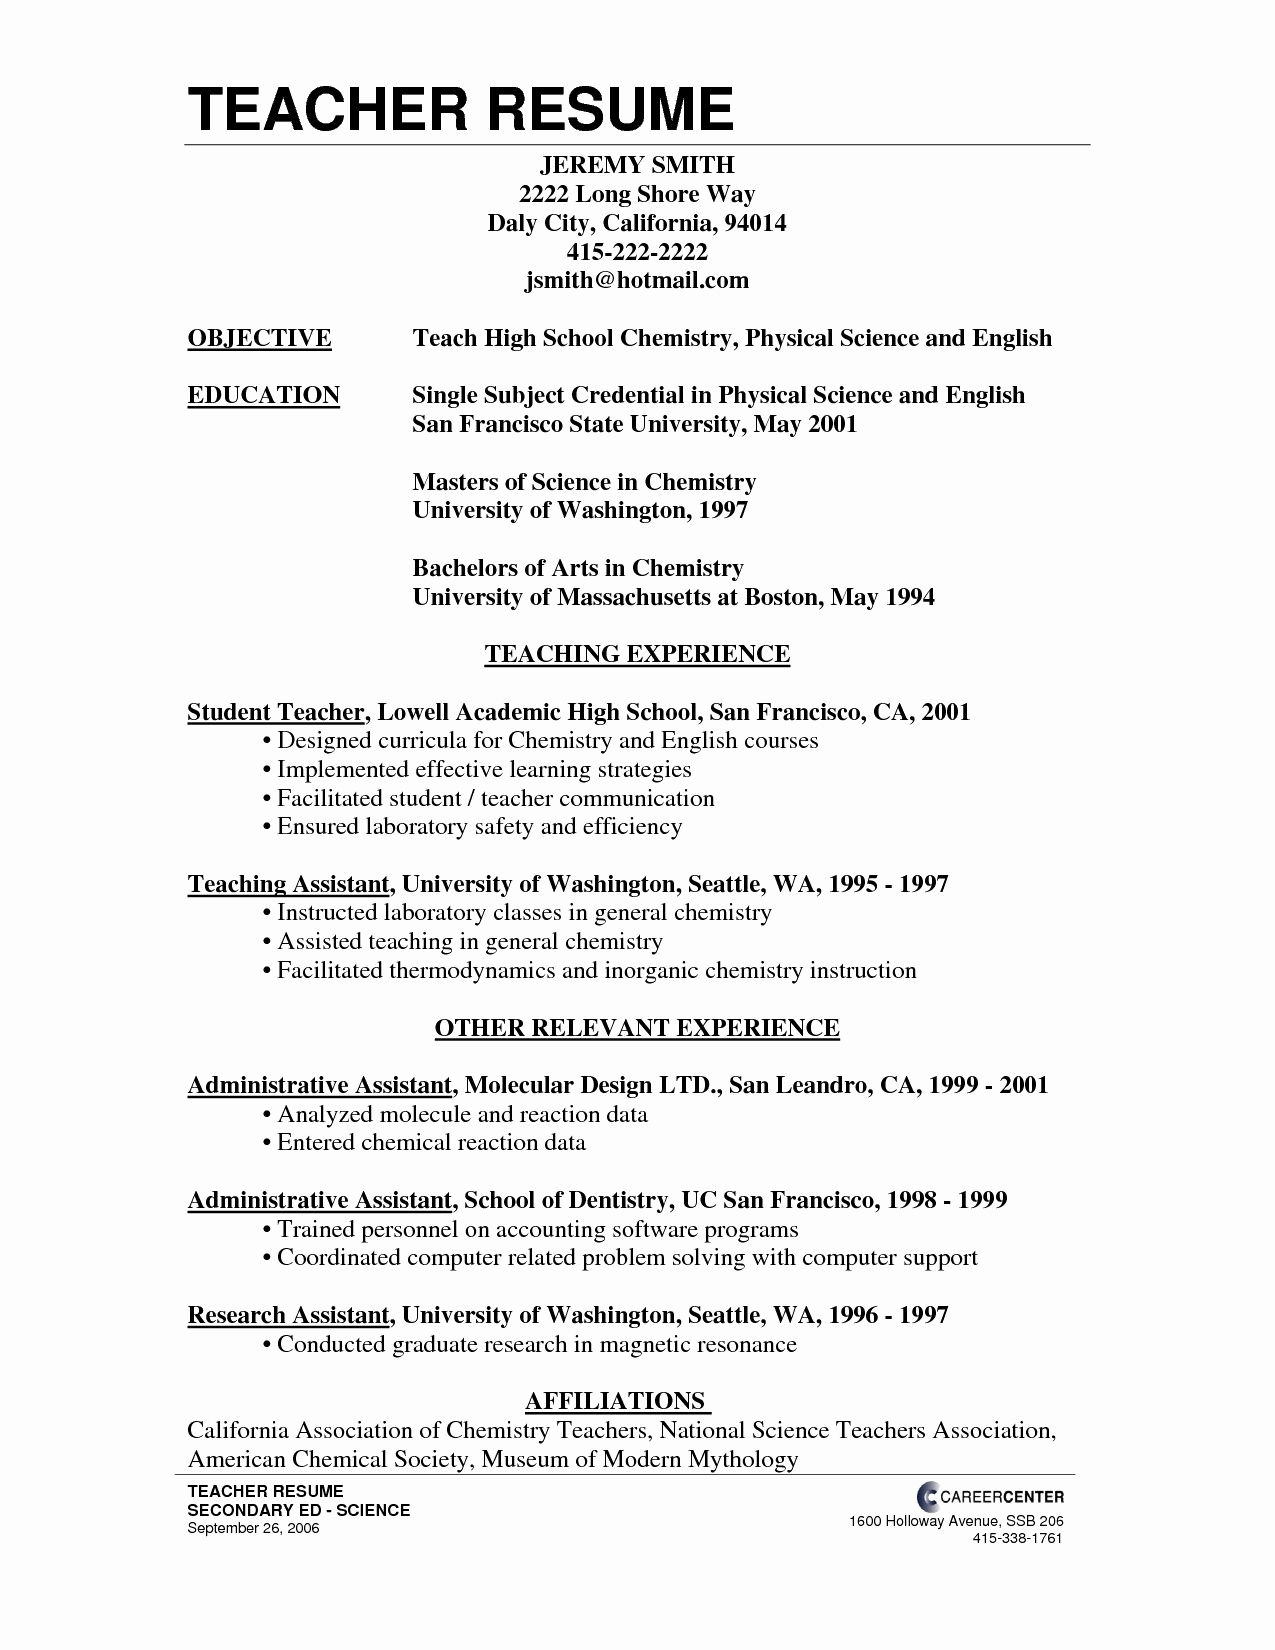 Sample Letter Template - Resume Cover Letter Example New Free Cover Letter Templates Examples